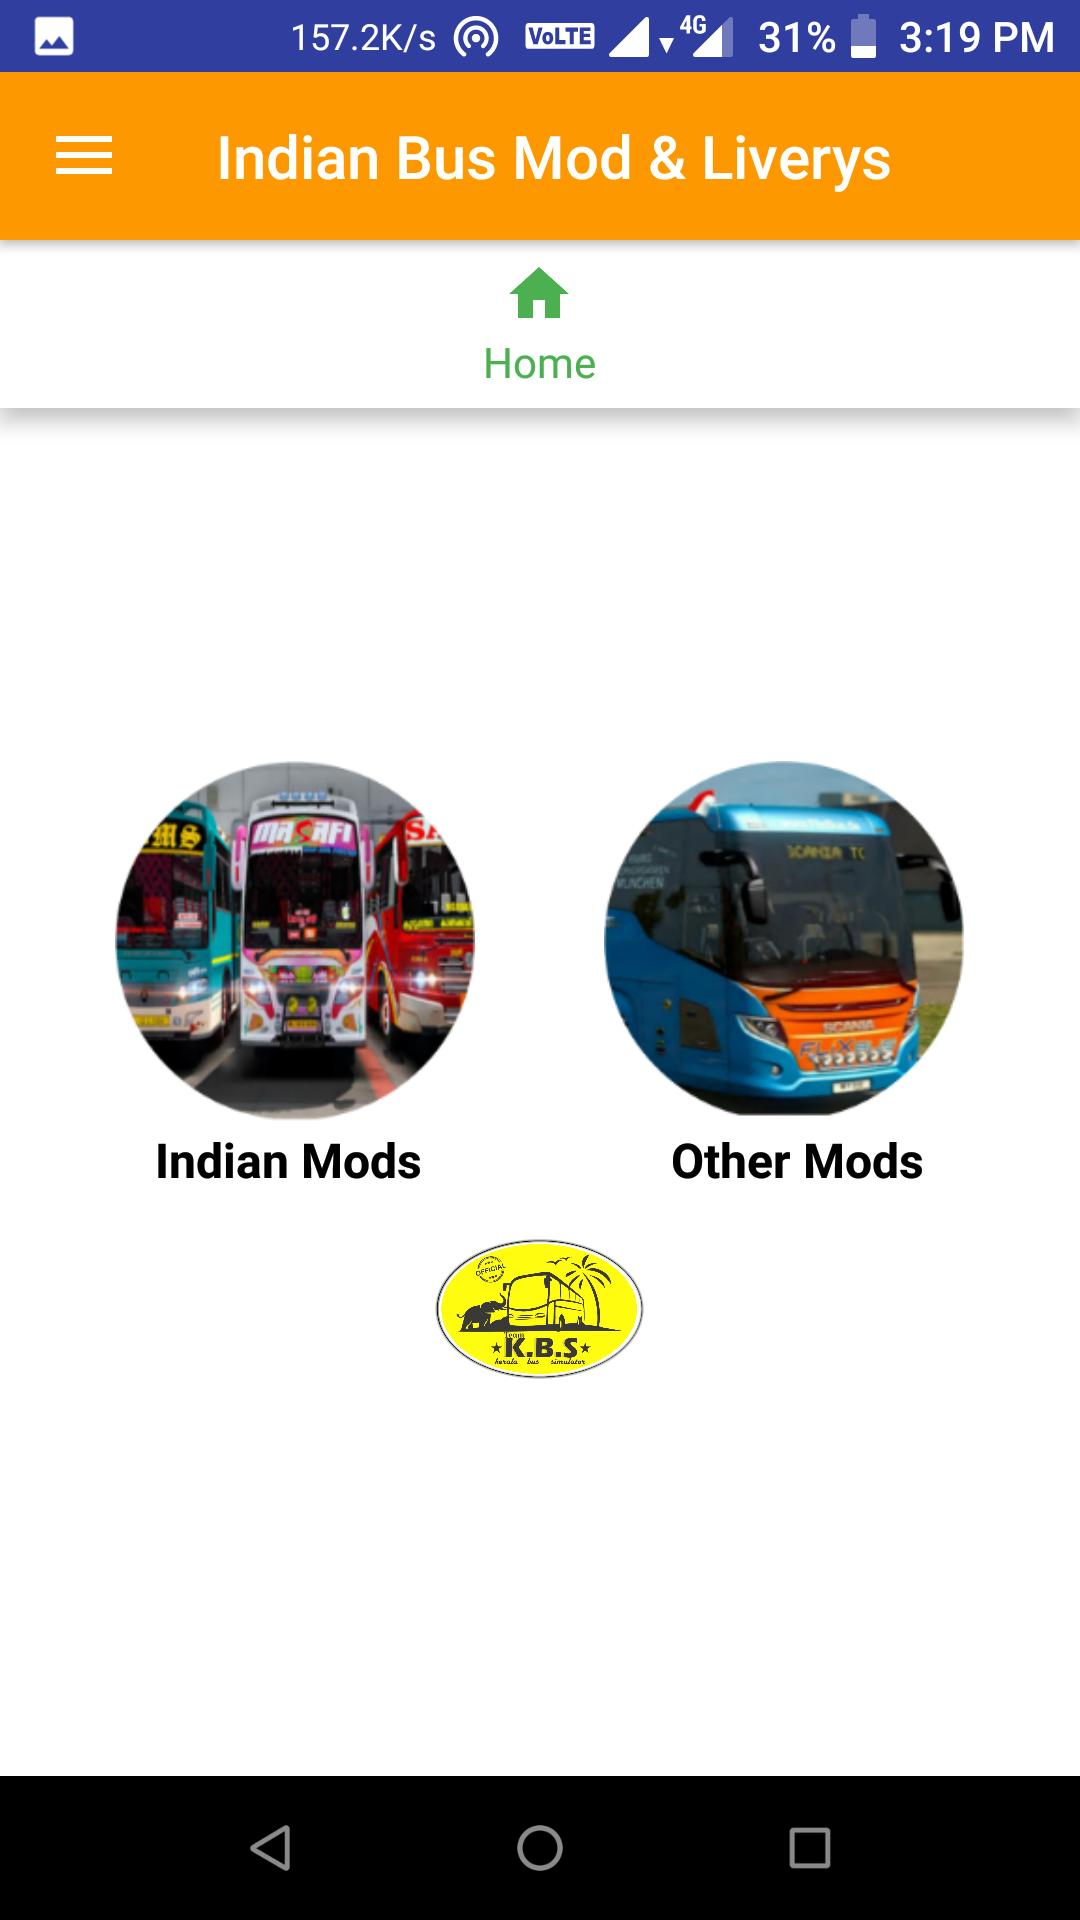 Indian bus mod livery for Android - APK Download